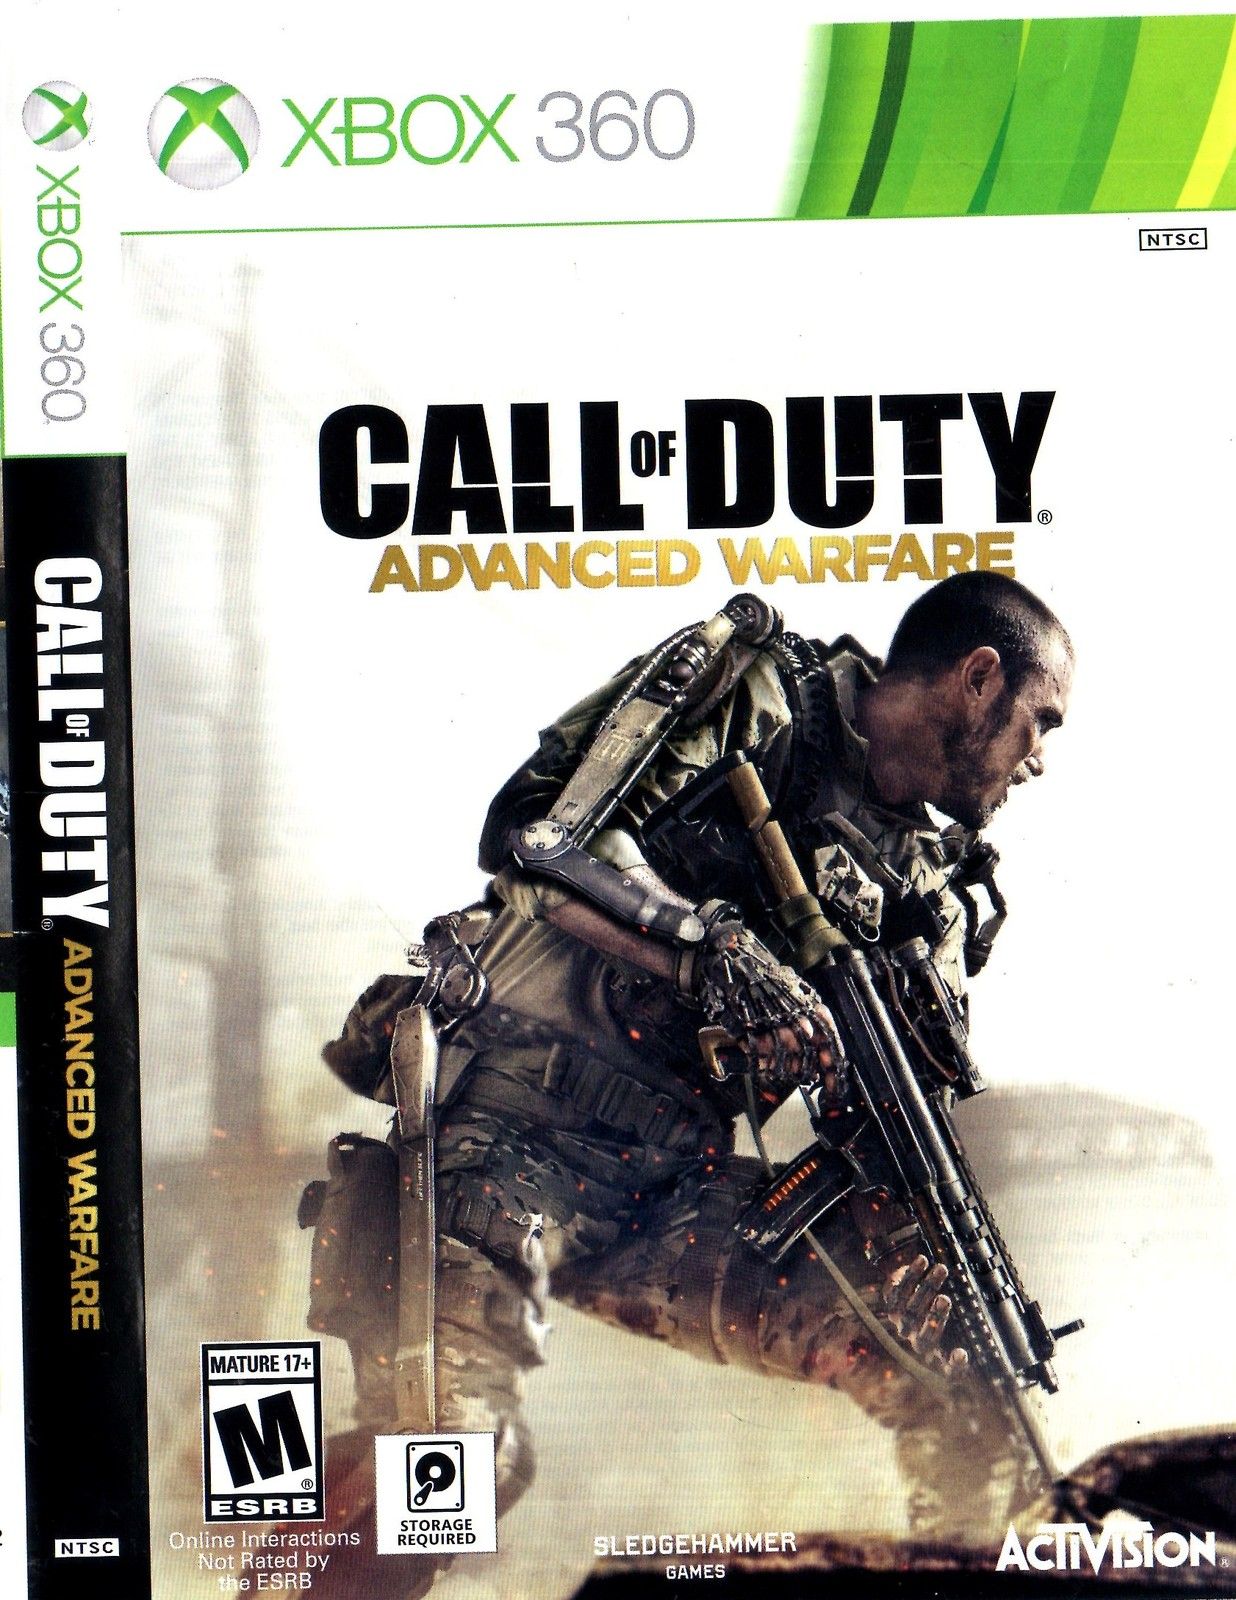 XBox 360: Call of Duty - Advanced Warfare